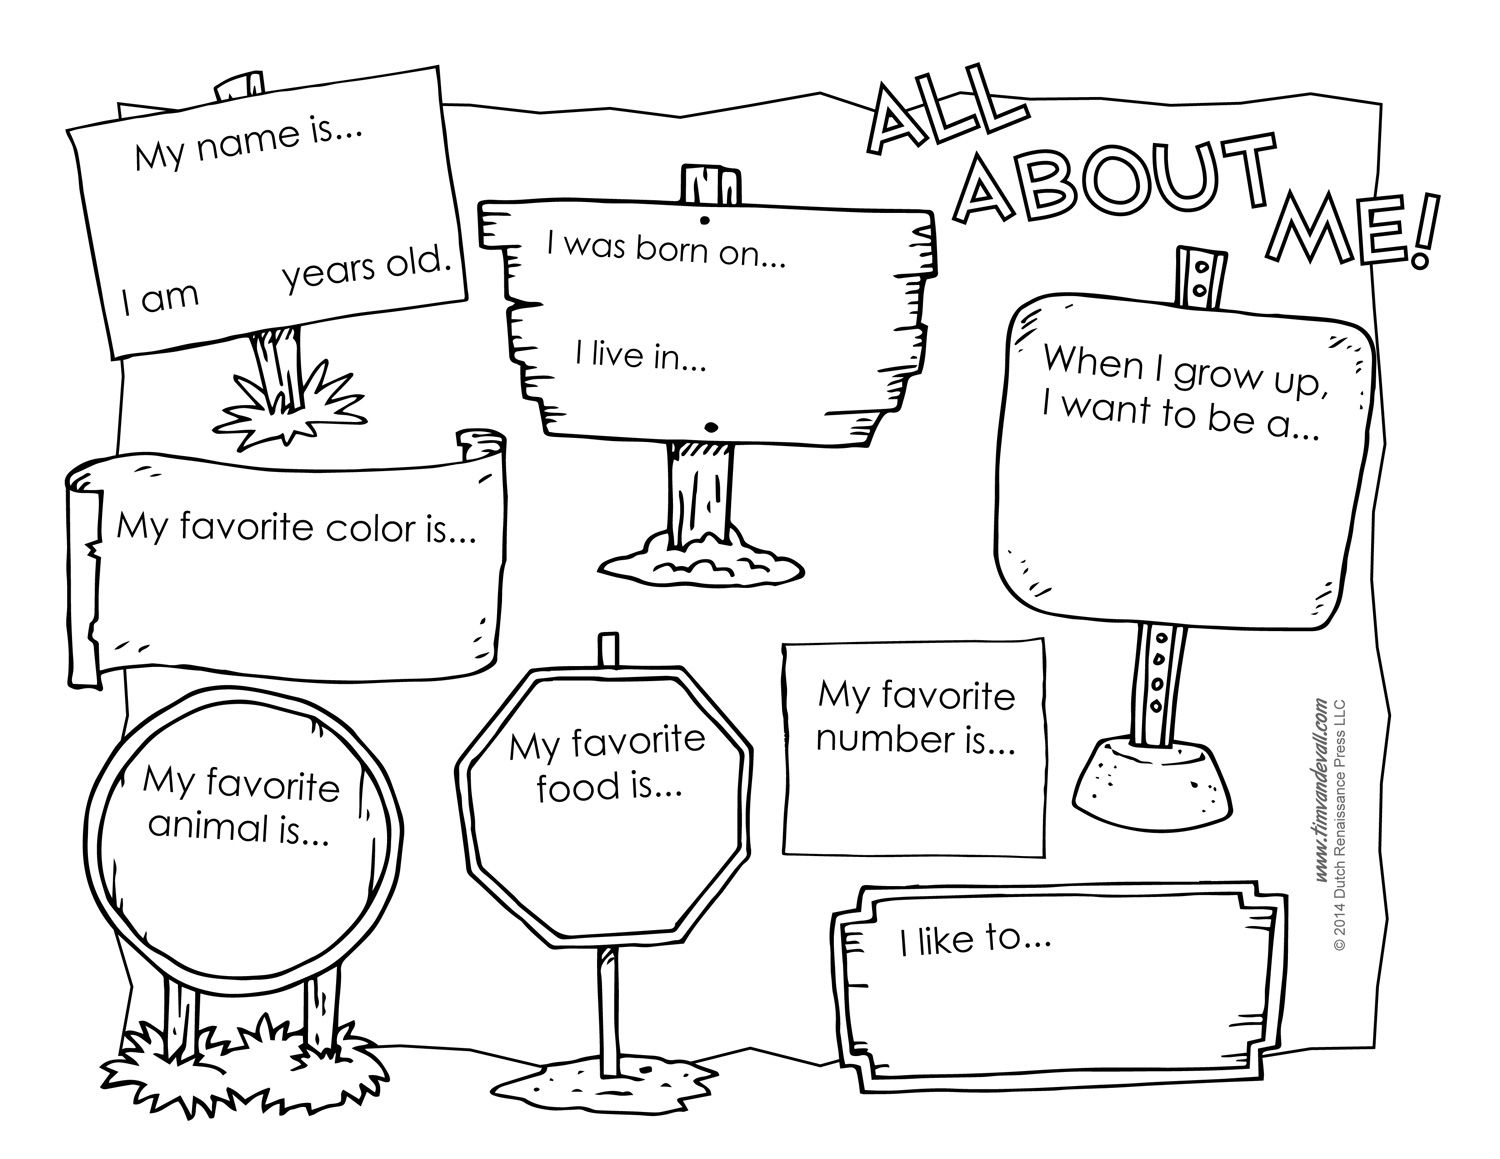 Worksheets All About Me Printable Worksheet all about me worksheet tims printables printables